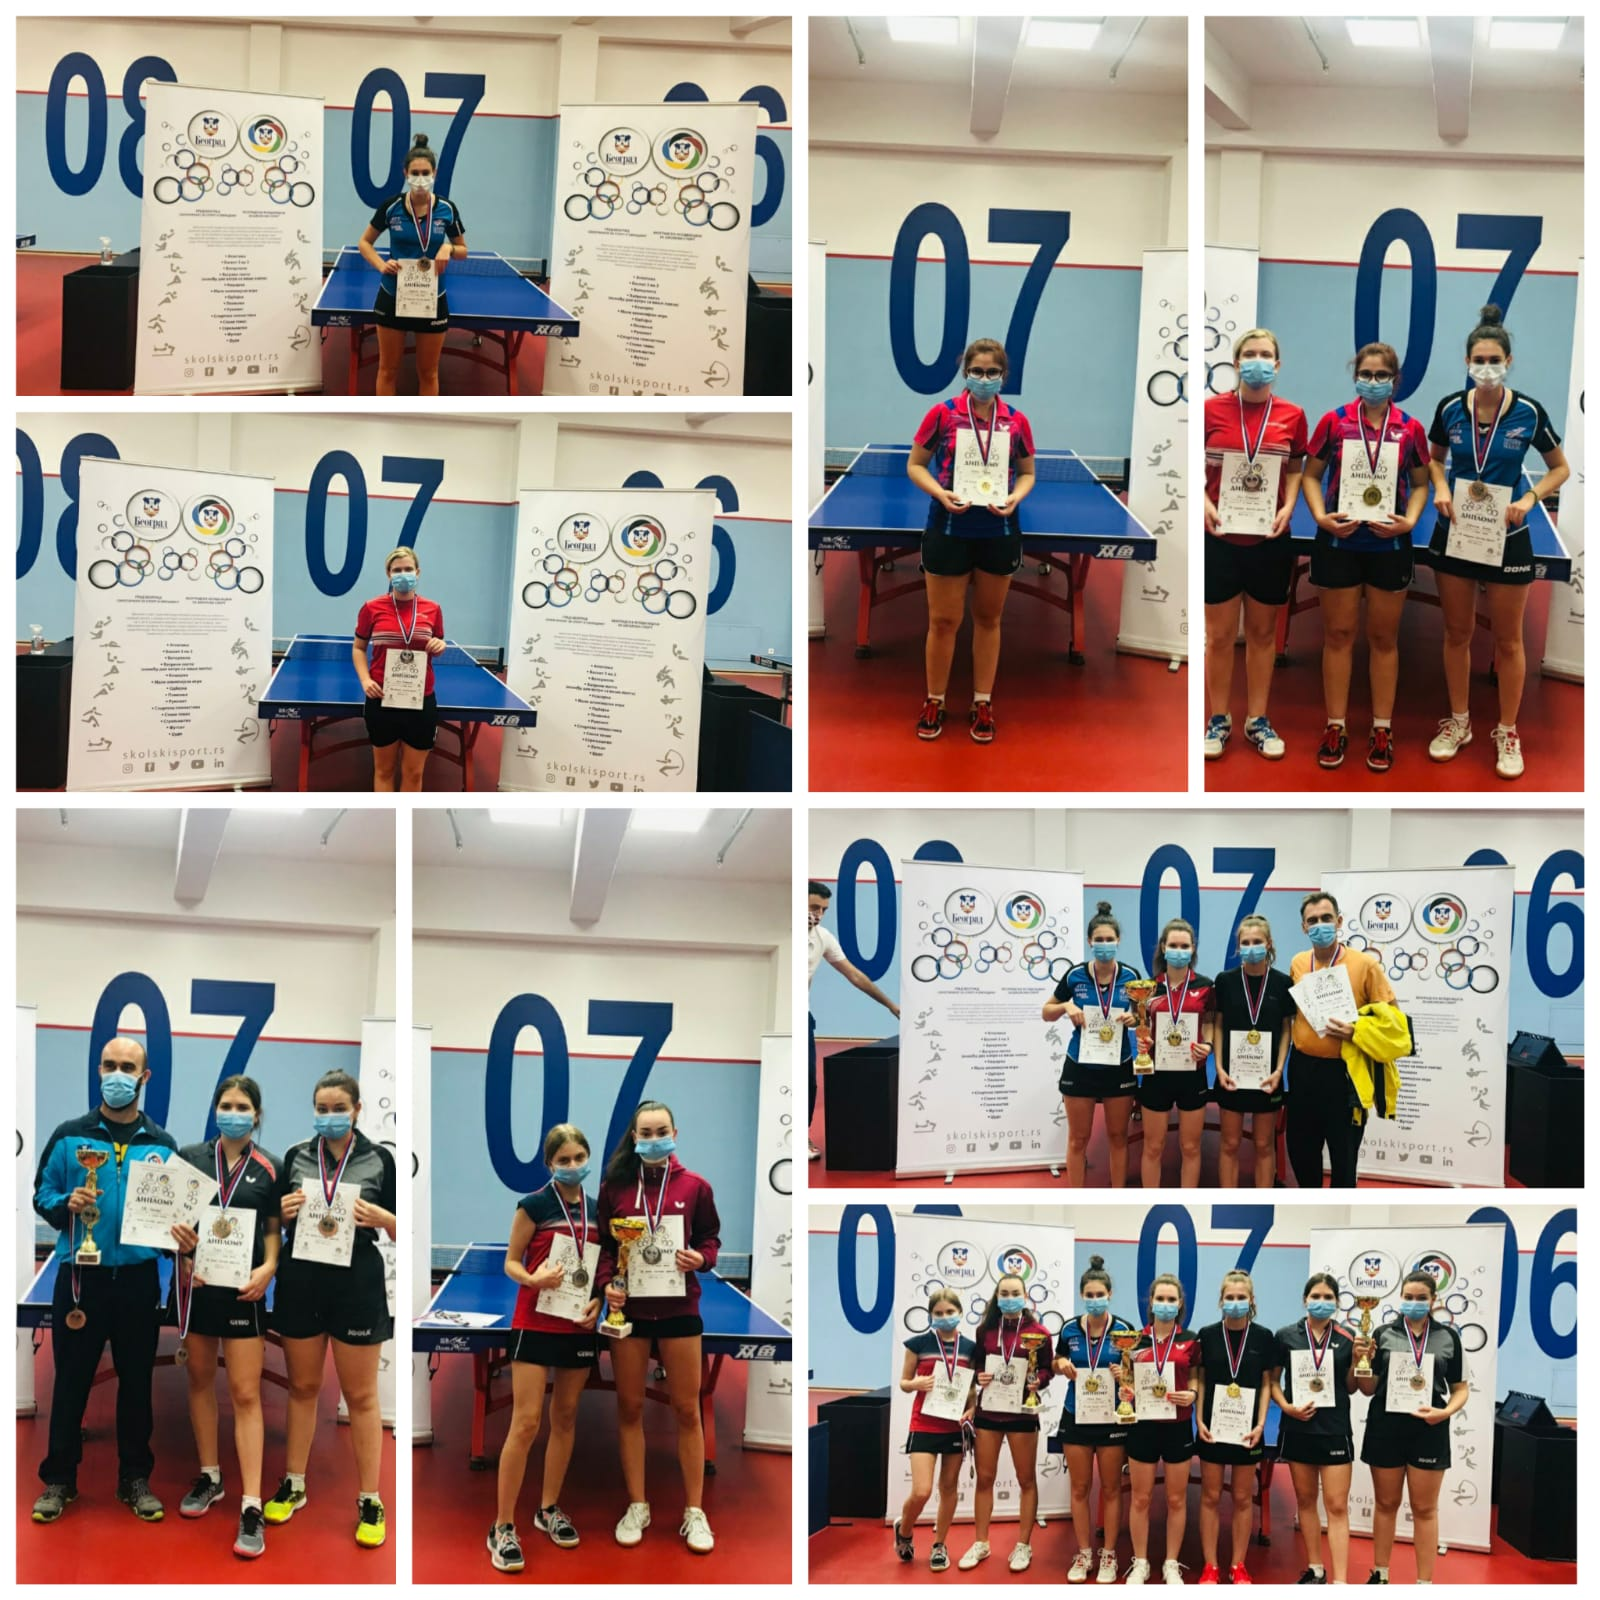 PLACEMENTS AT THE CITY TABLE TENNIS CHAMPIONSHIP-SCHOOL YEAR 2020/2021-SECONDARY SCHOOL STUDENTS, INDIVIDUAL AND TEAM